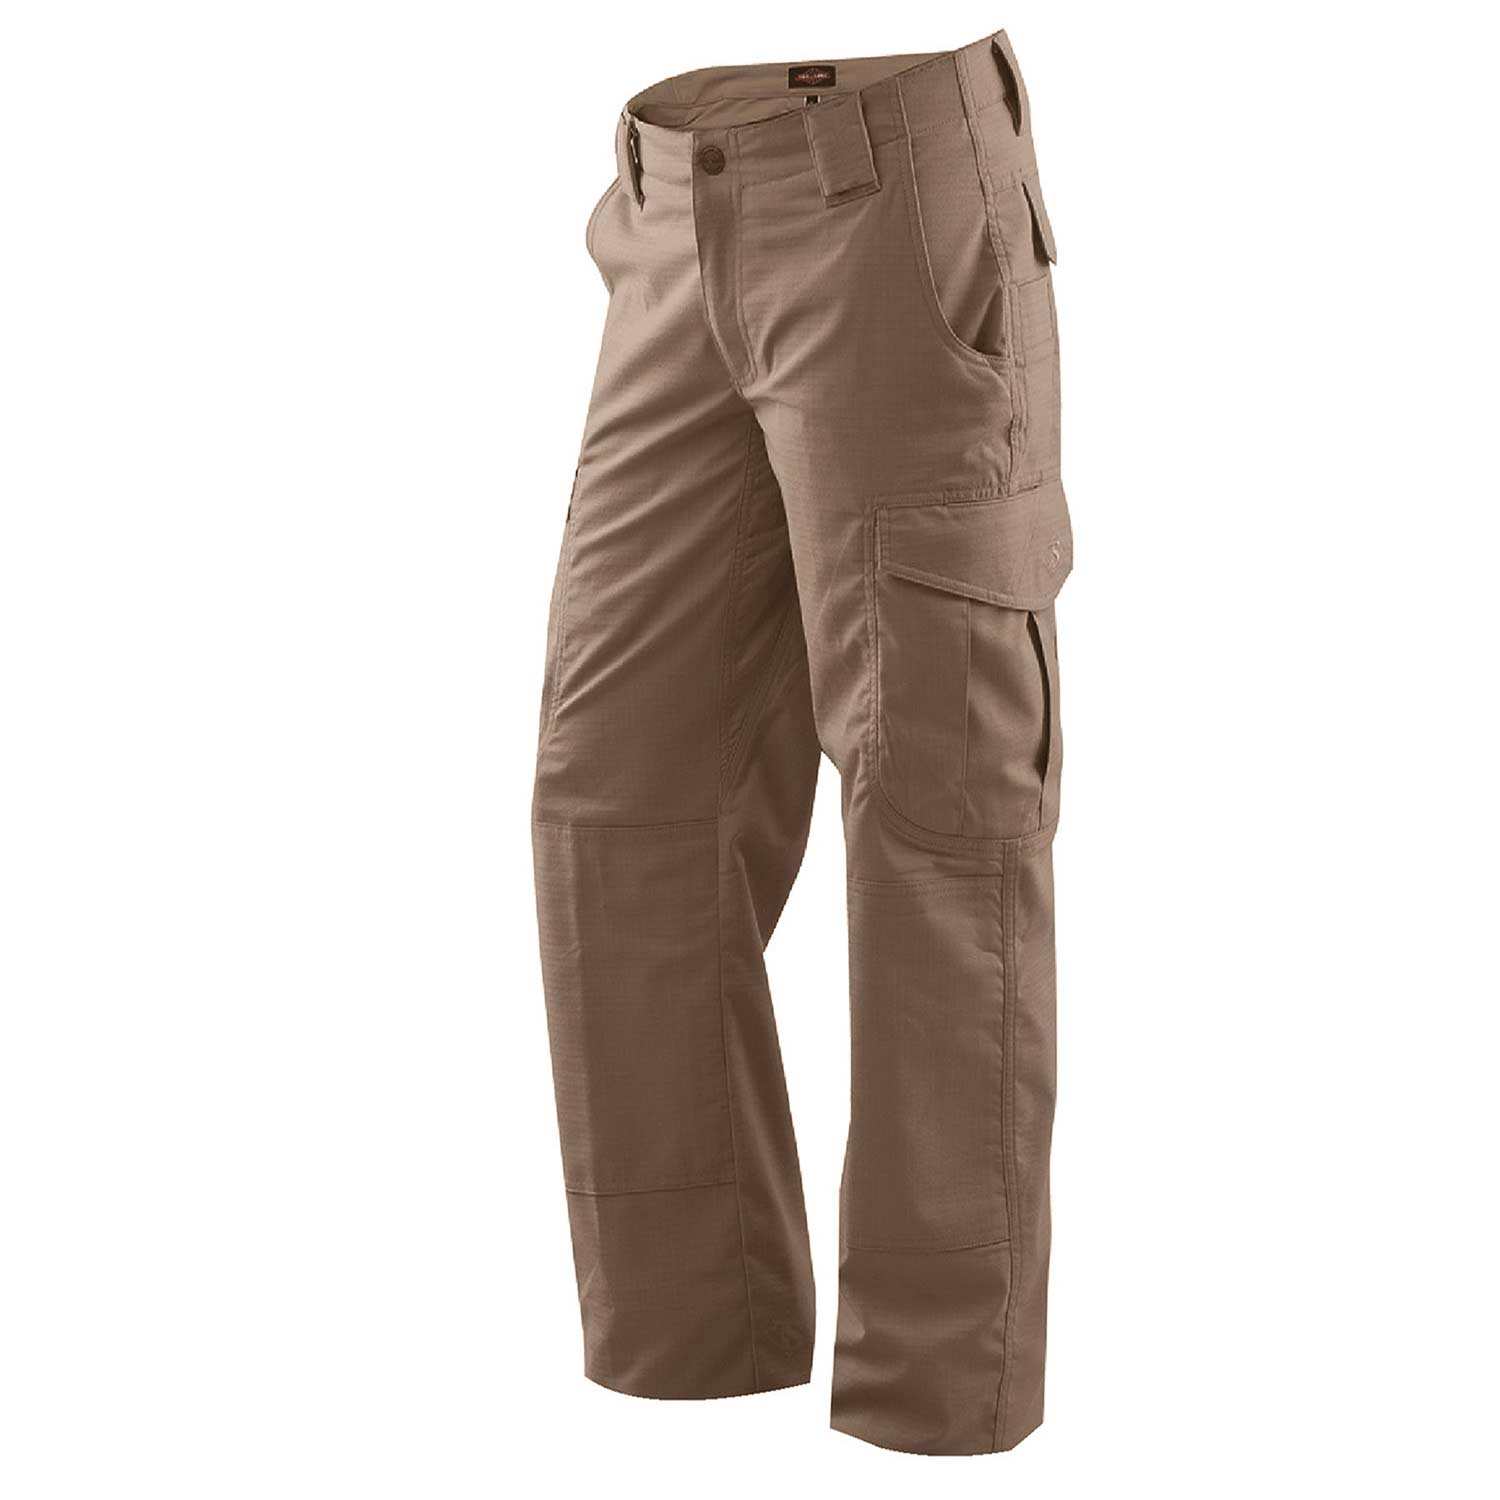 94c2f6aa Tru-Spec 24-7 Ladies Ascent Pant | Women Tactical Pants